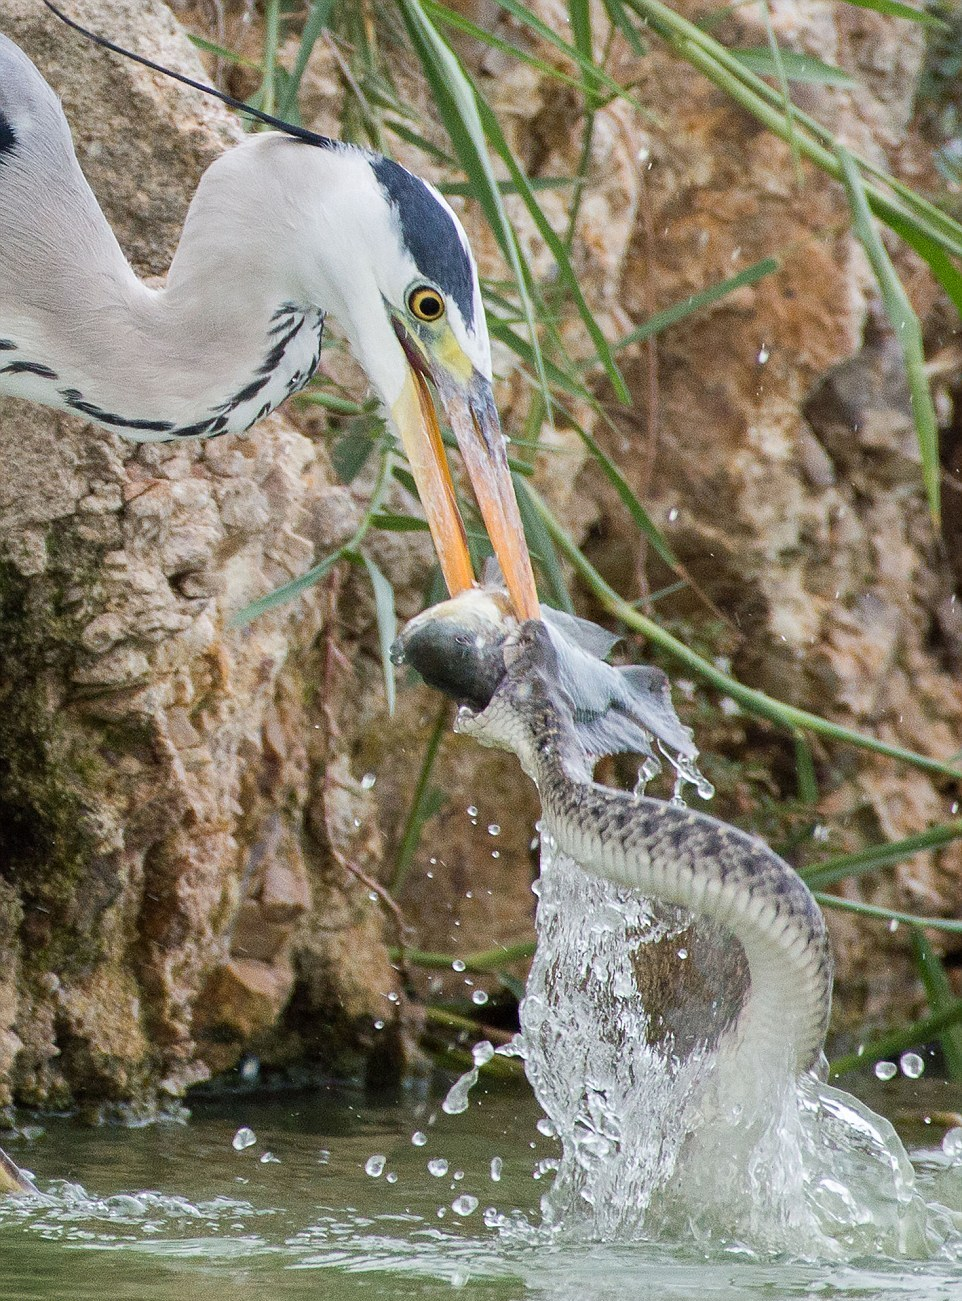 like-the-heron-with-the-snake-fish-shared-03